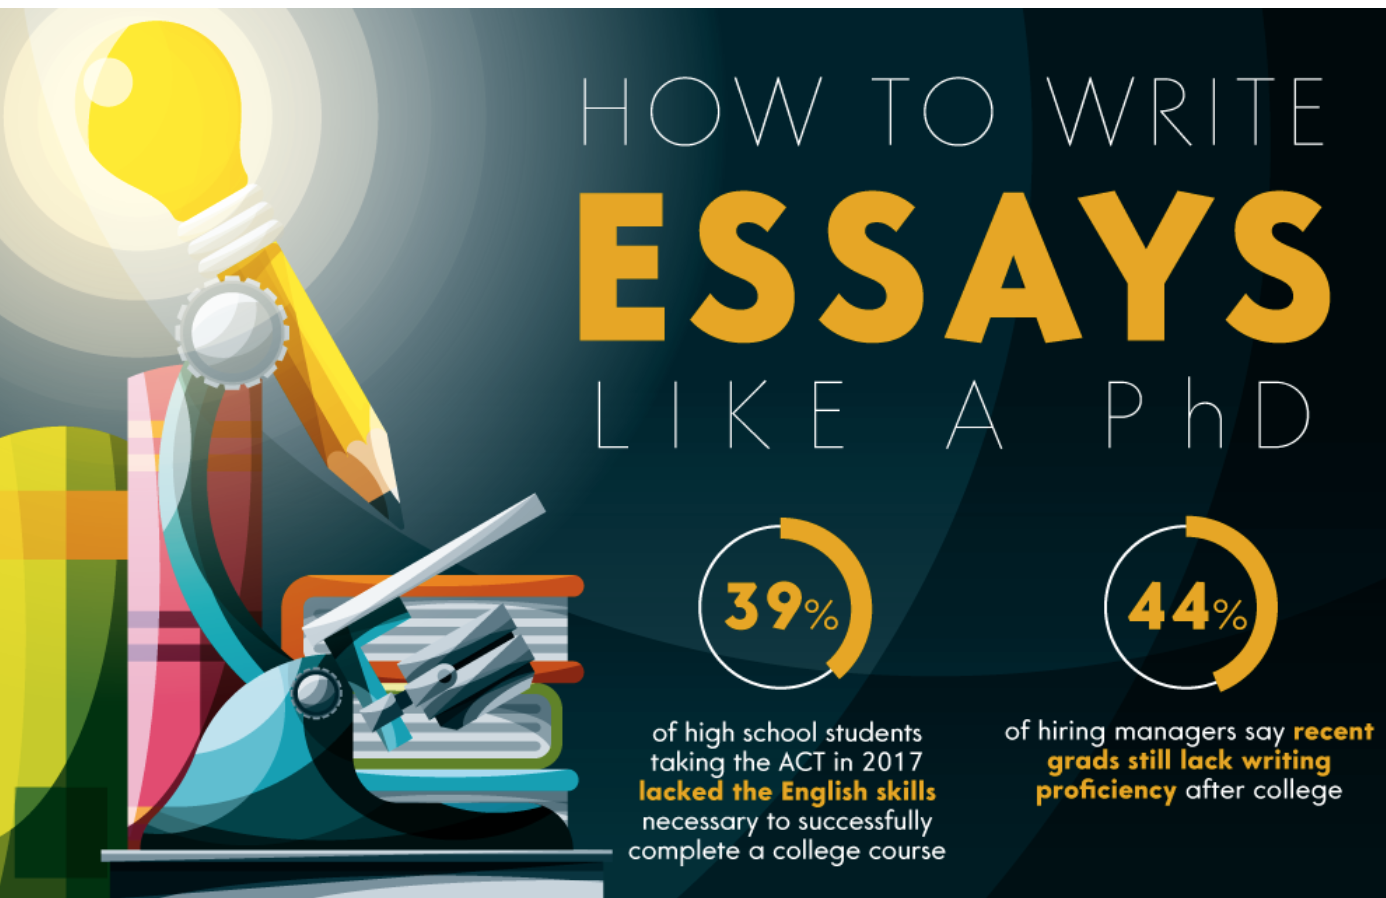 What Is The Thesis Statement In The Essay  High School Reflective Essay Examples also Business Essay Writing How To Write The Perfect Essay  By Example Of English Essay